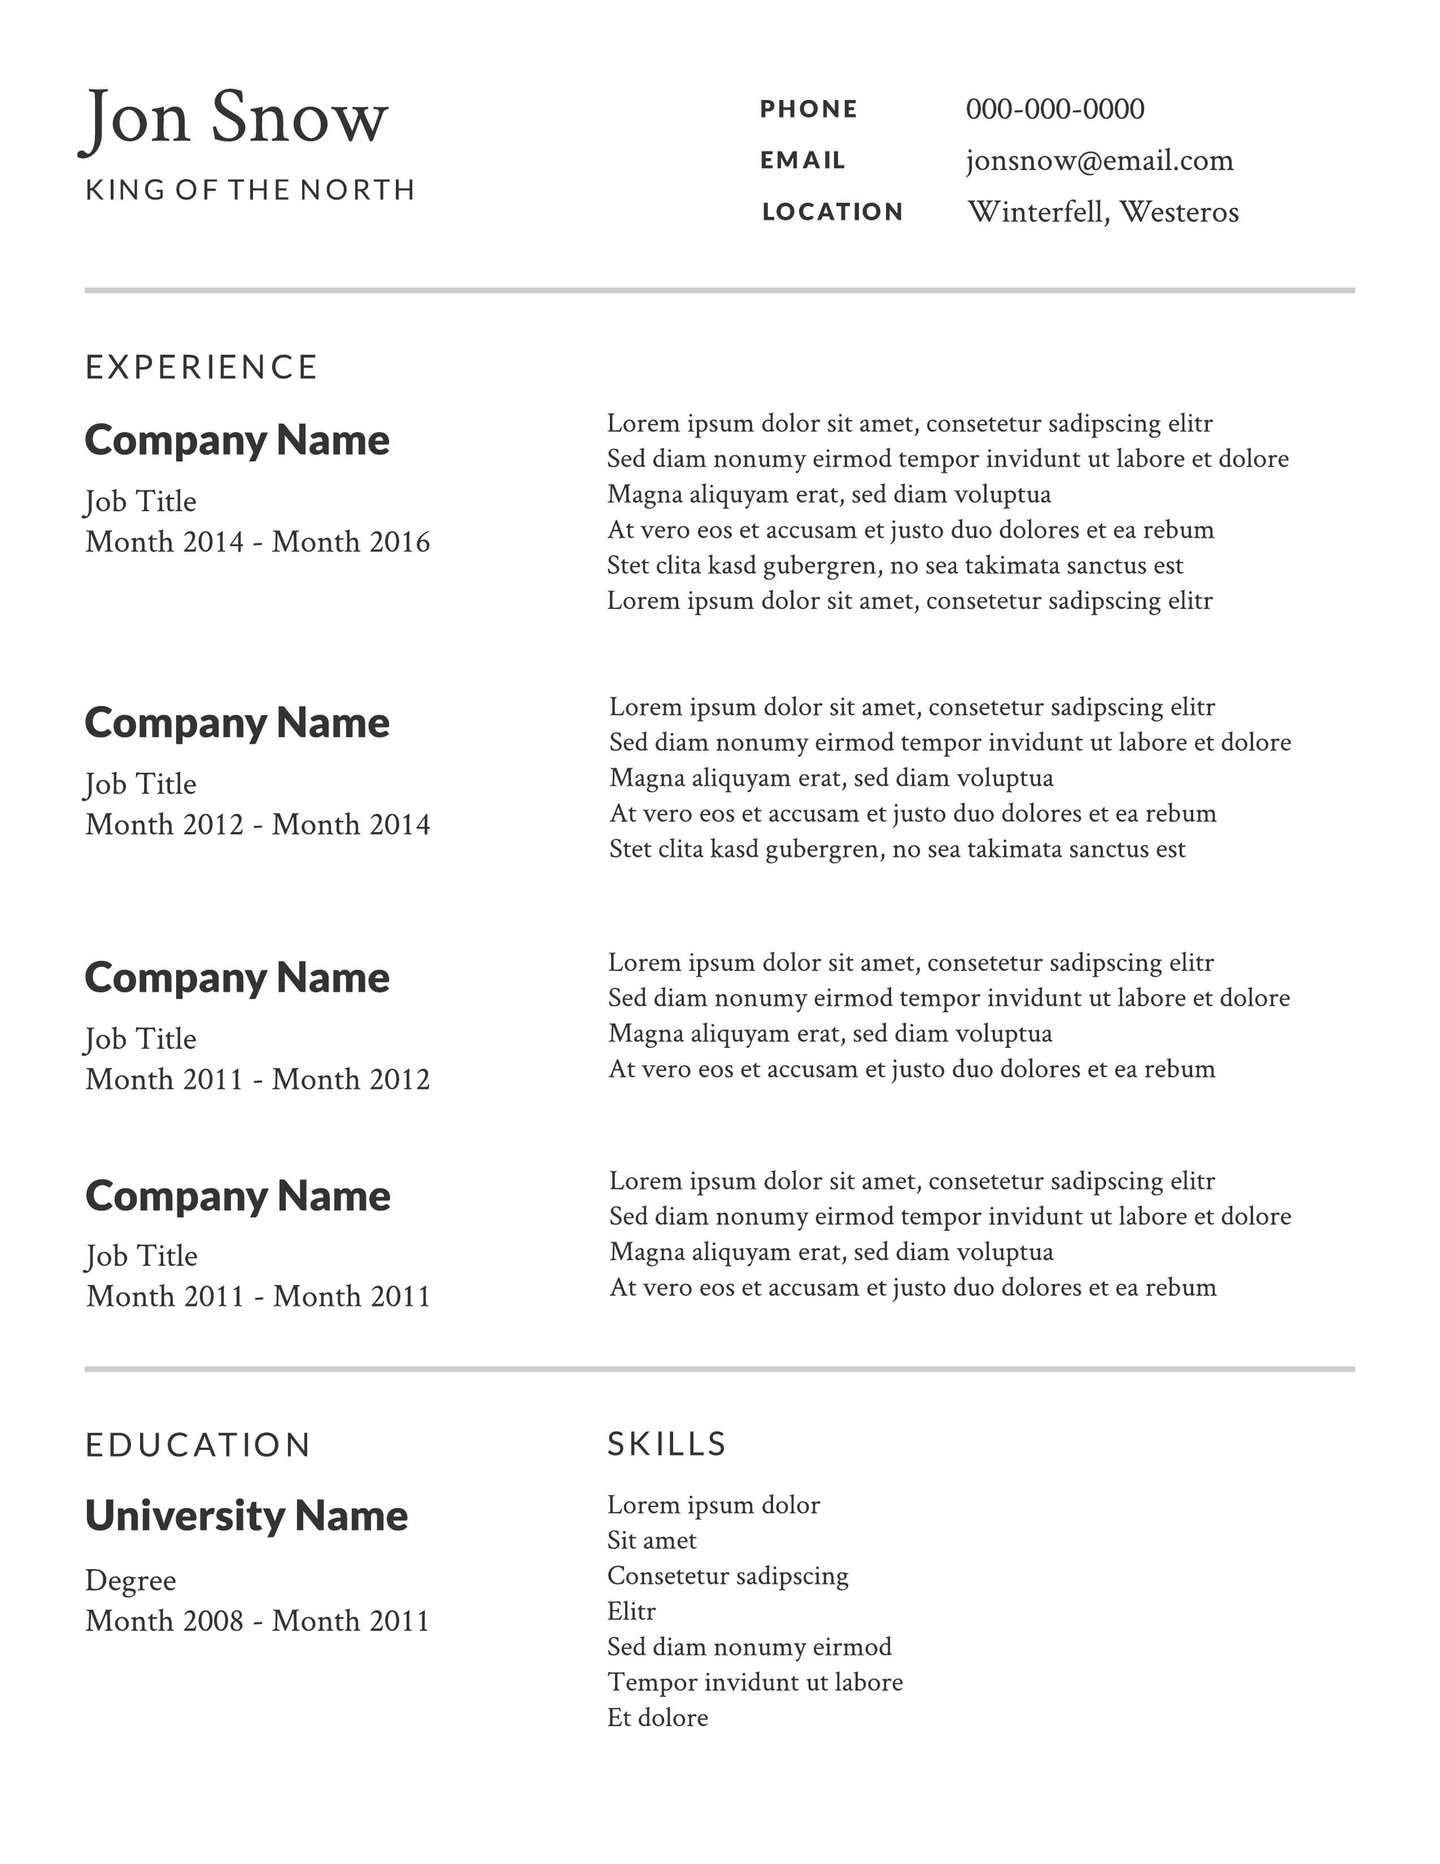 Professional Resume Template. free resume templates 17 downloadable resume templates to use. 25 more free resume templates to help you land the job modern resume template free download. download cv format best 25 resume templates free ideas on pinterest professional template word. basic cv template microsoft word resume fresh free professional templates inspirational 2007. resume outline examples letter amp pin free sample template outlines